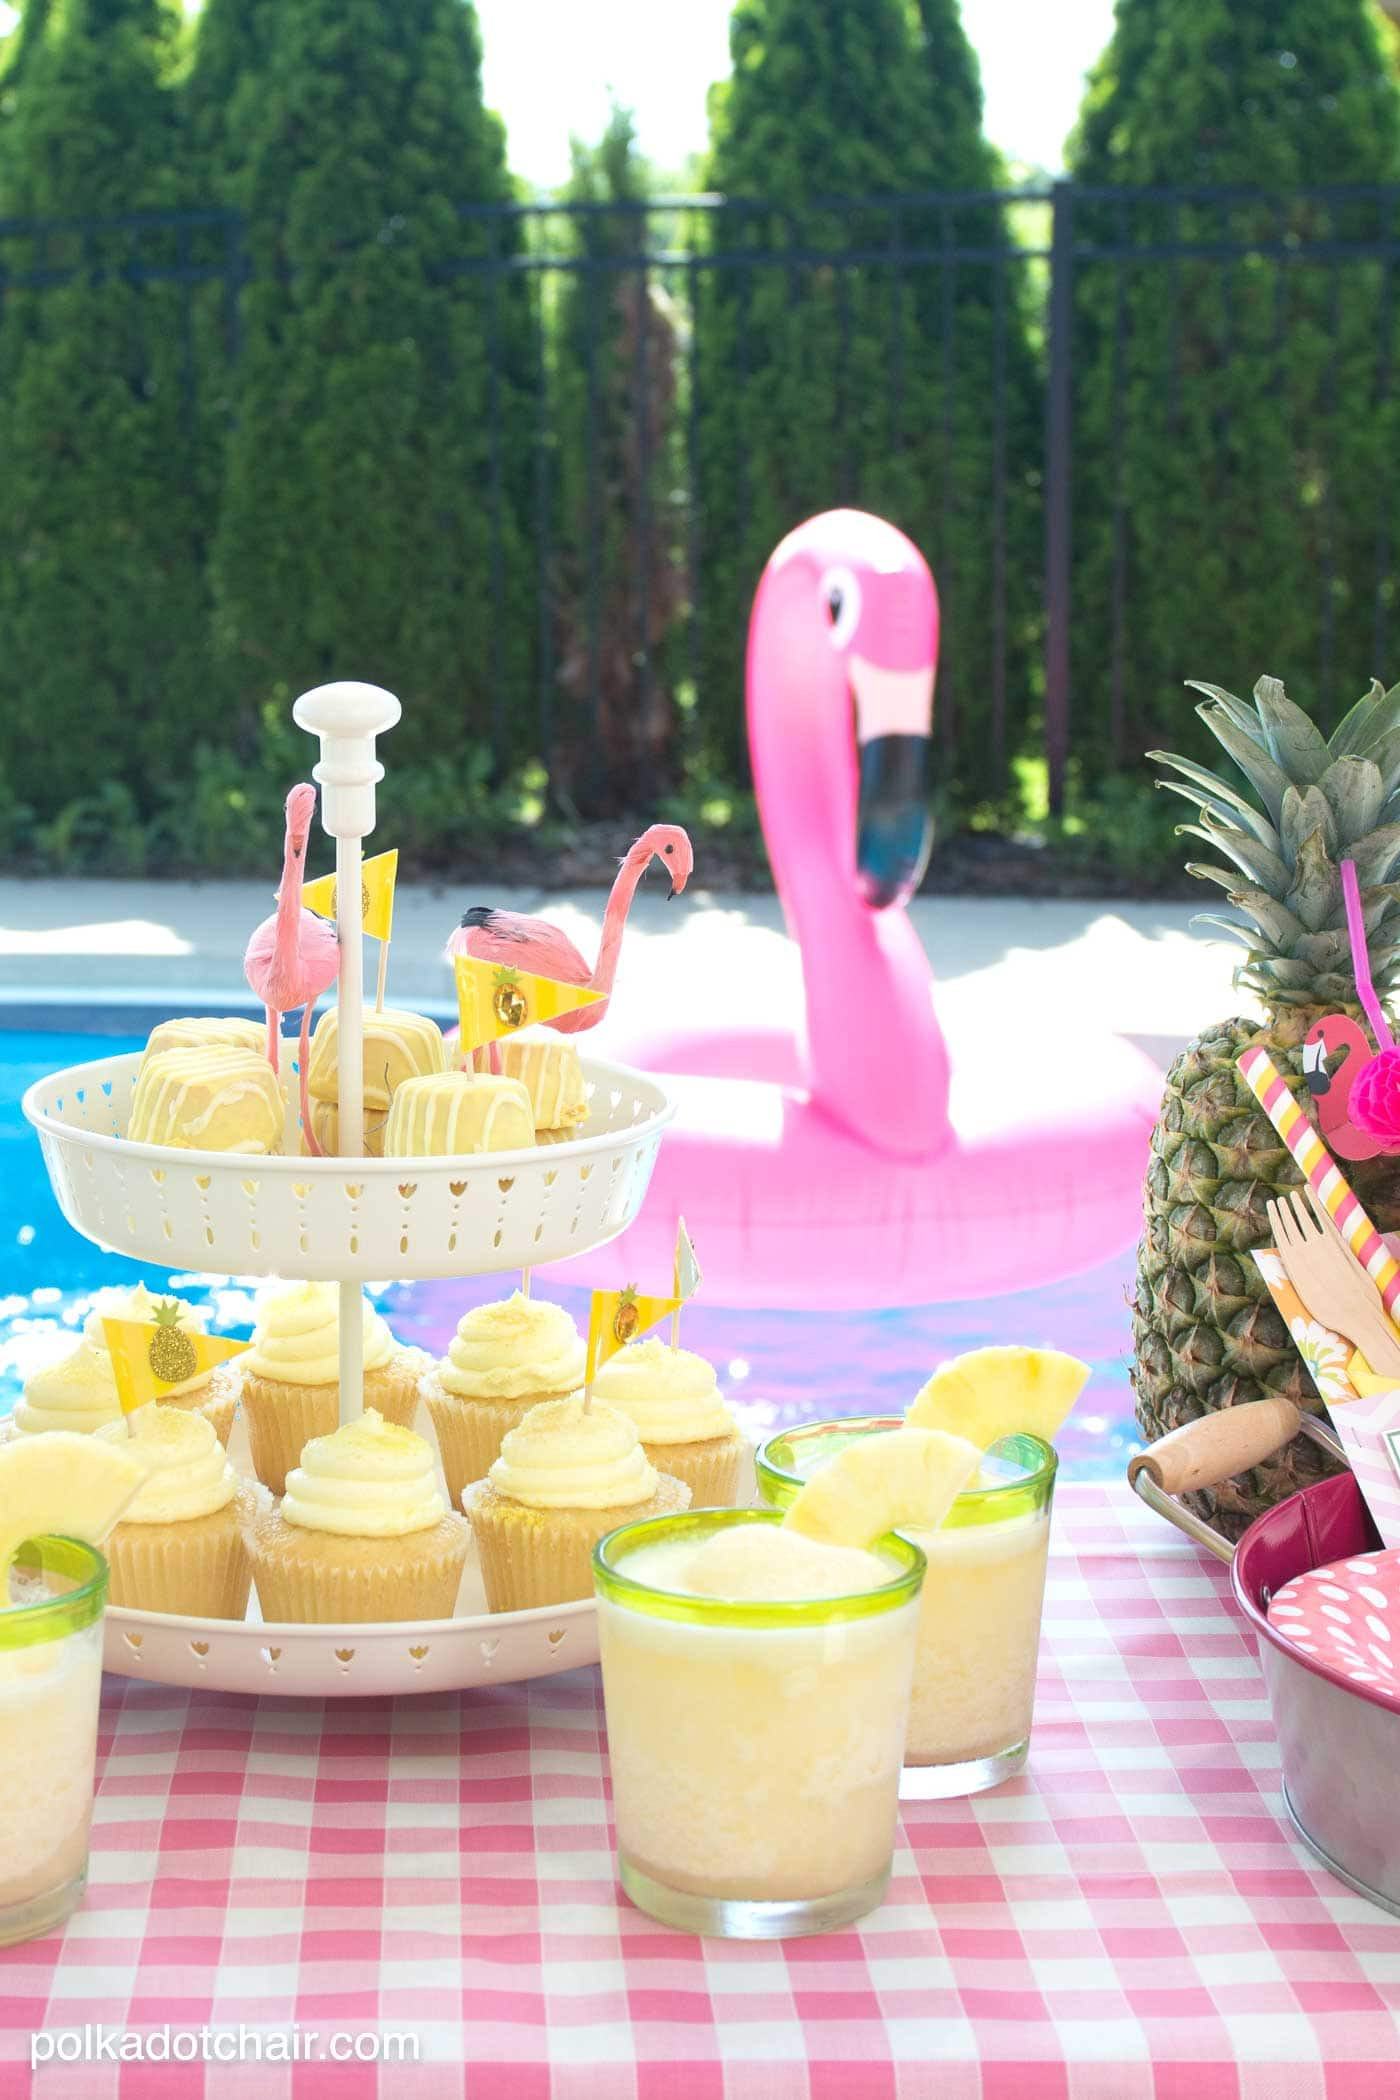 Pool Party Ideas For Toddlers  Summer Backyard Flamingo Pool Party Ideas The Polka Dot